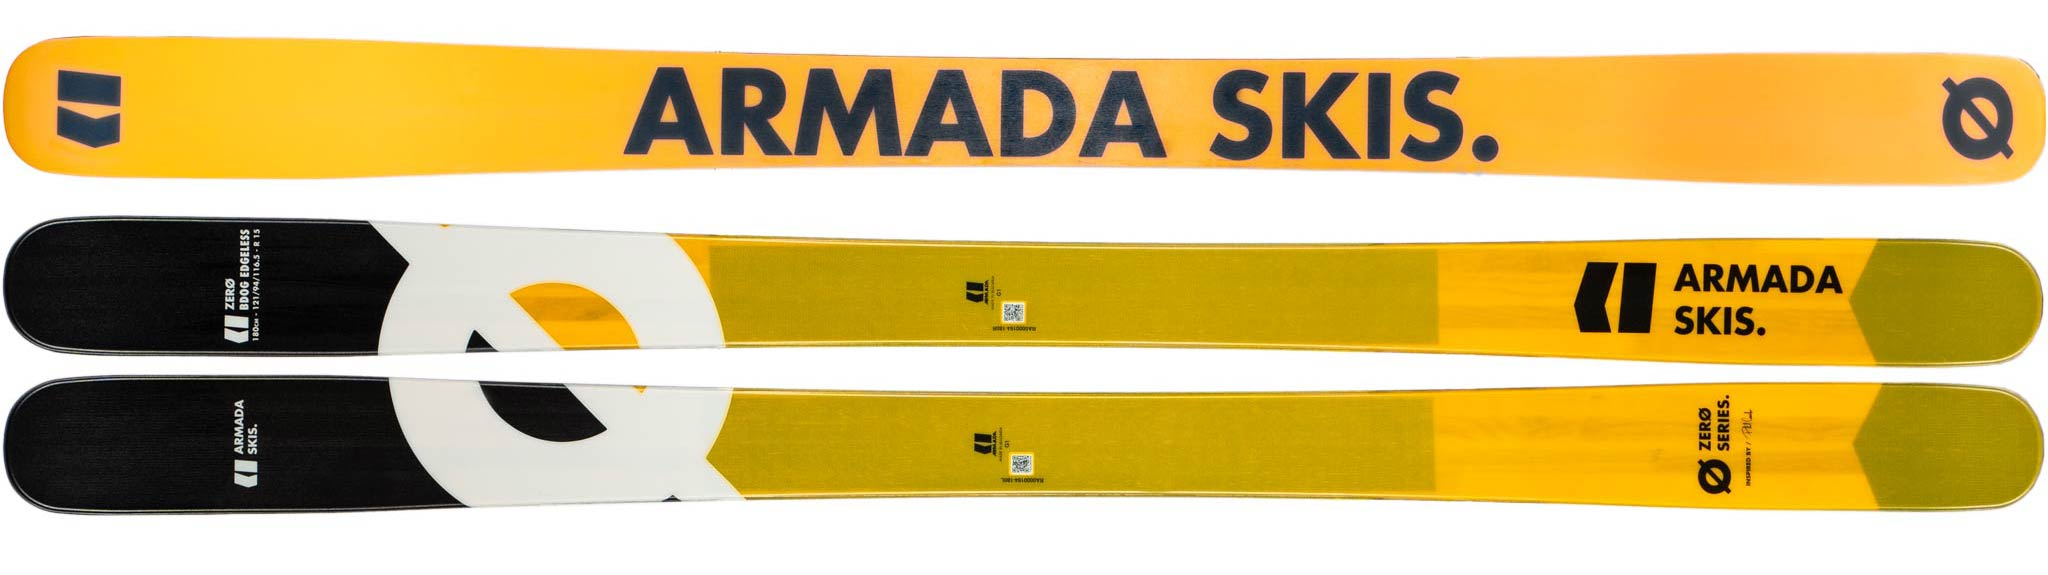 Armada Skis 2019/2020 - BDog Edgeless: Topsheet und Base